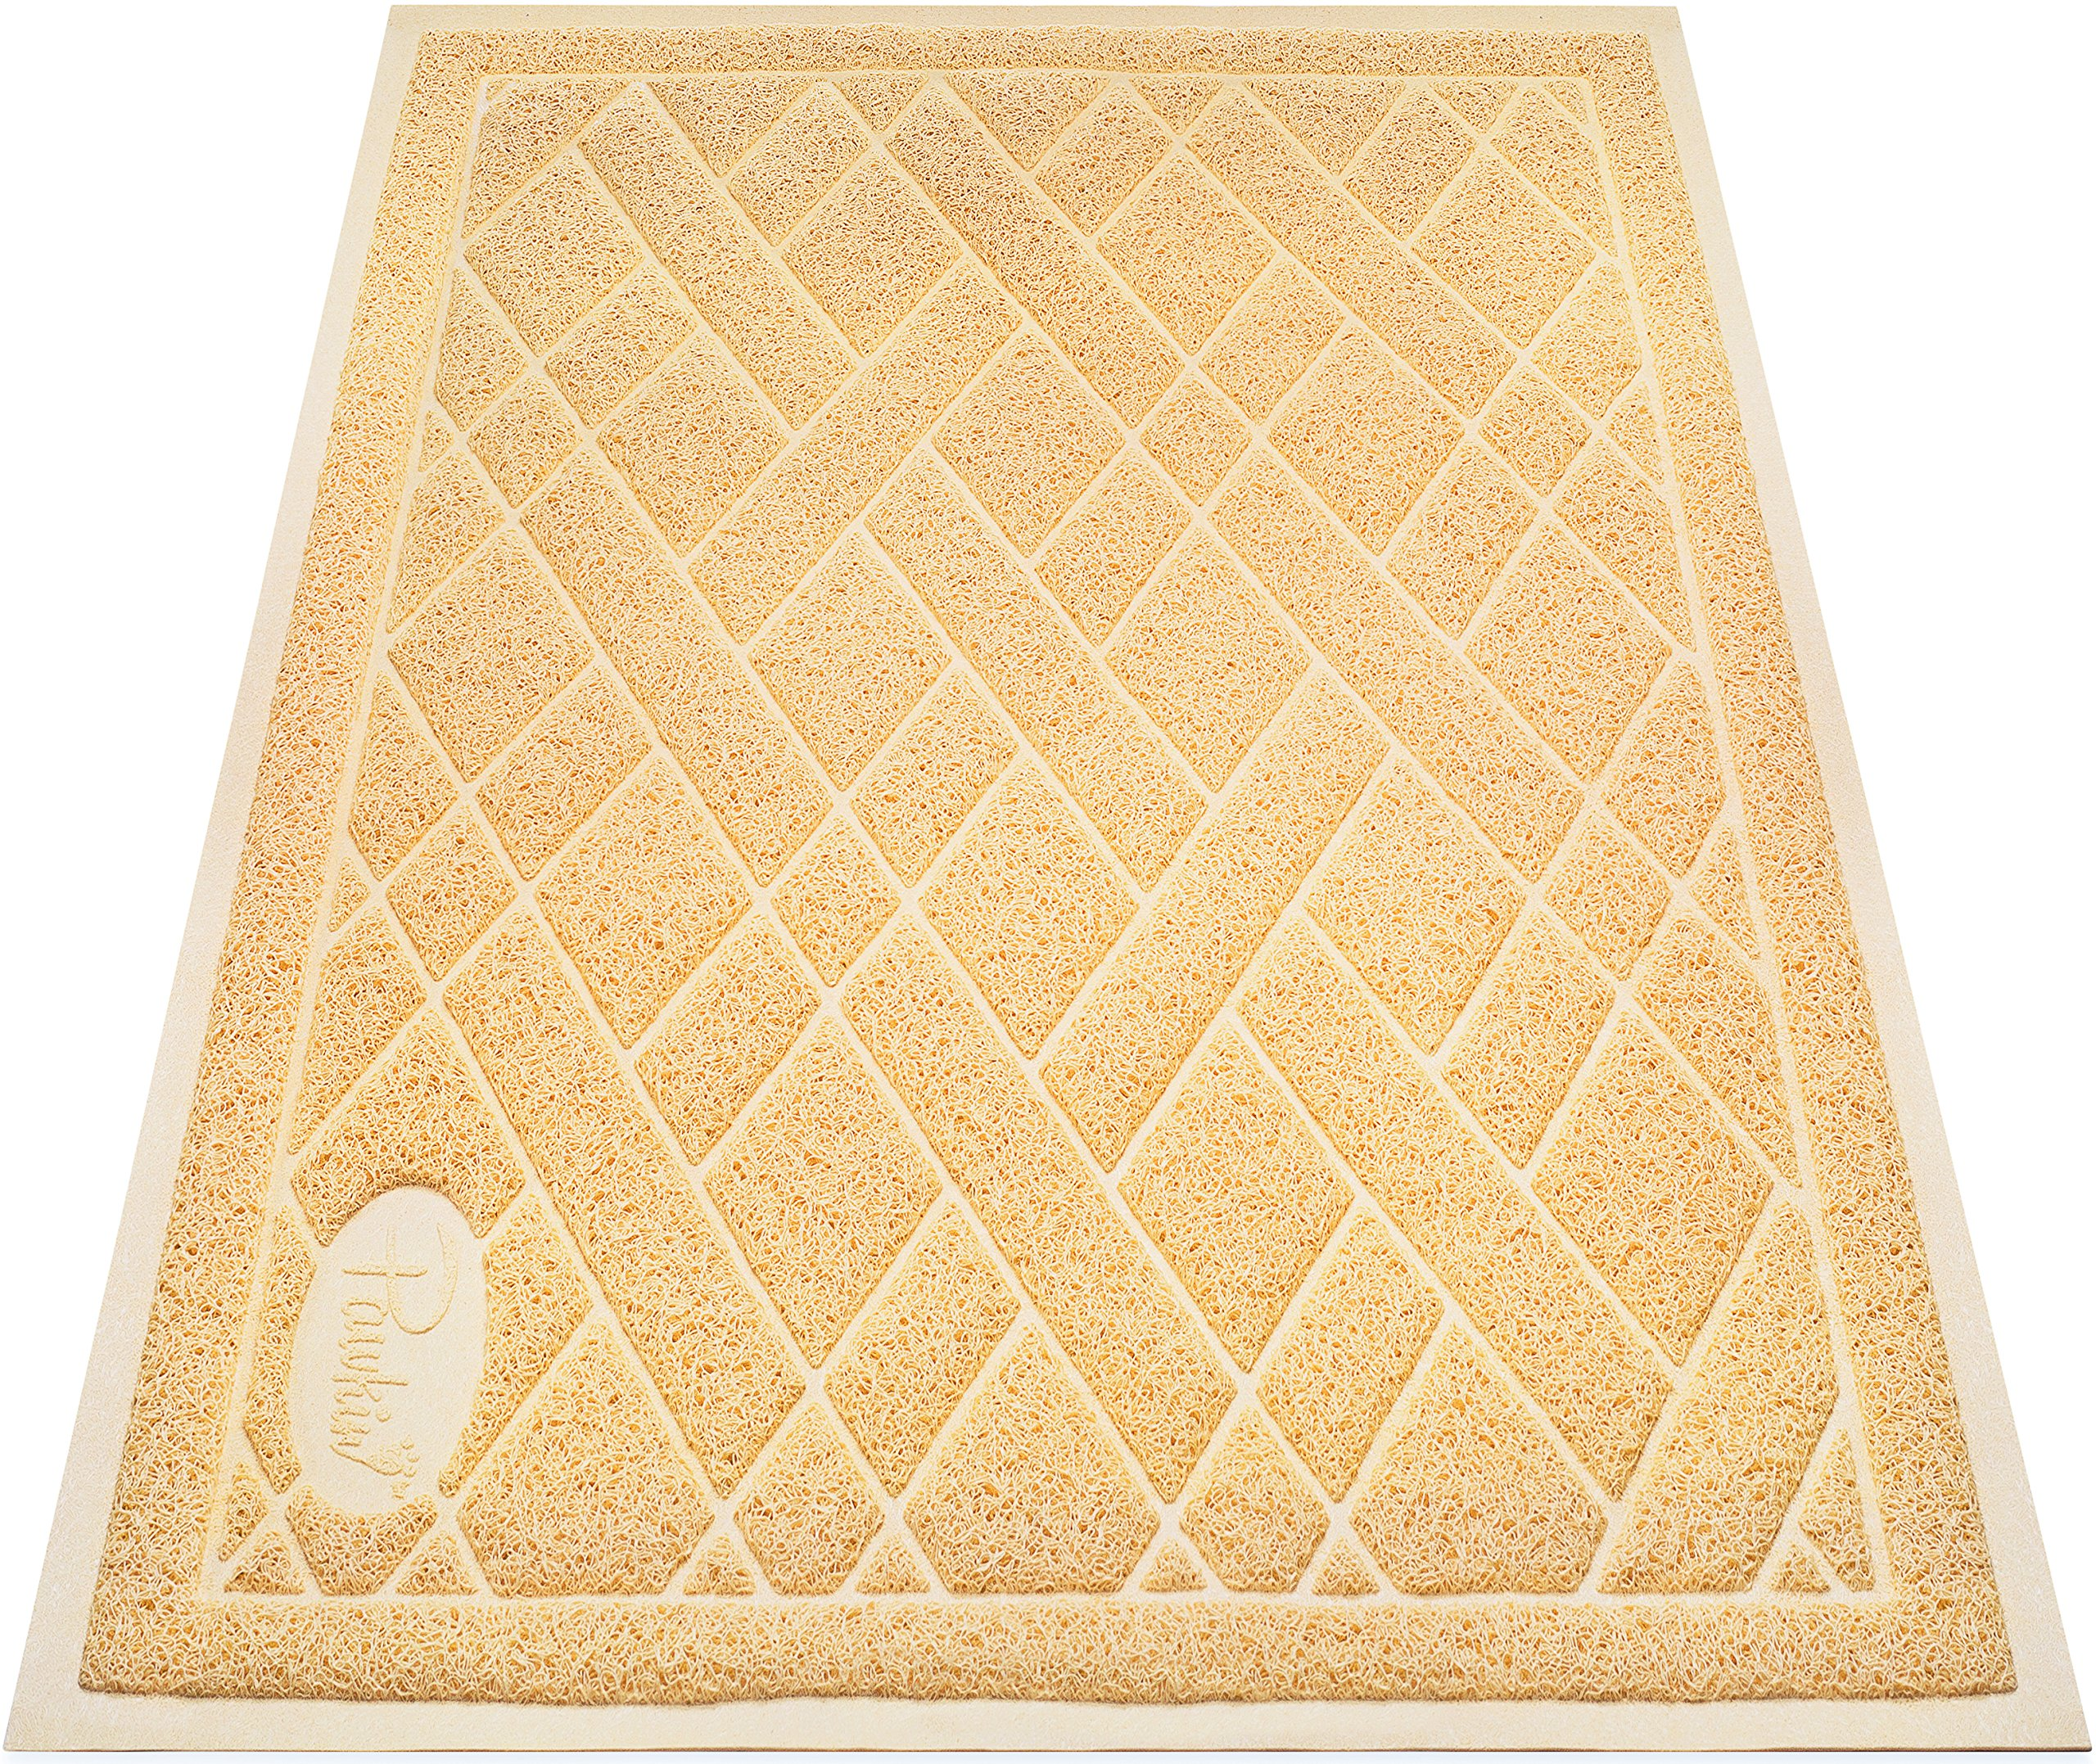 Pawkin Cat Litter Mat - Patented Design with Litter Lock Mesh - Extra Large - Durable - Easy to Clean - Soft - Fits Under Litter Box - Litter Free Floors - Golden Beige